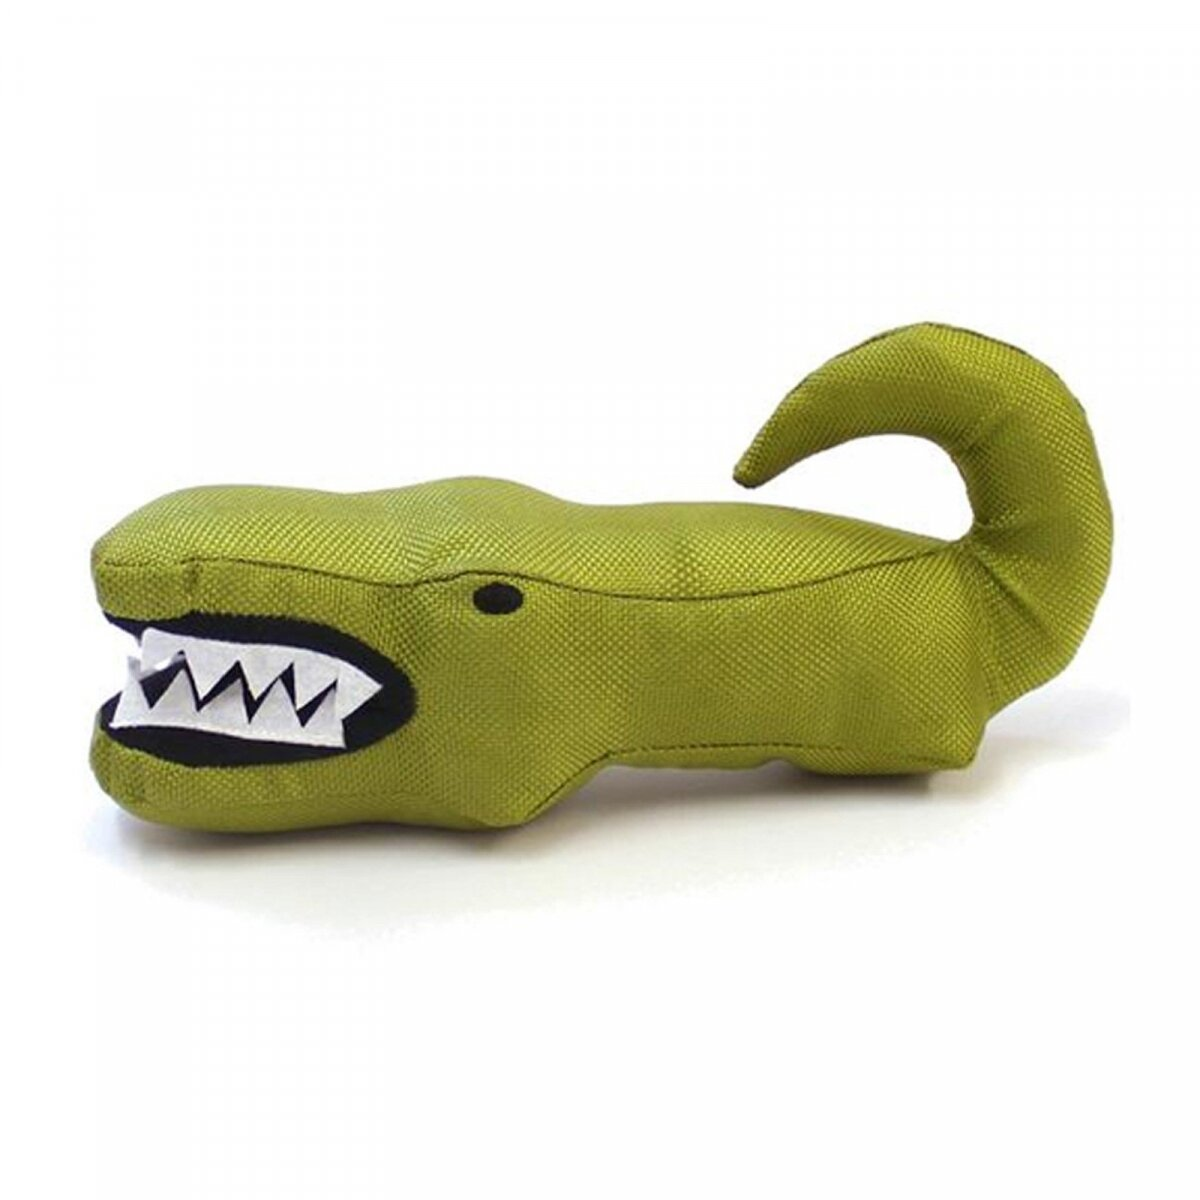 The Eco-Friendly Plush Toy, For Dogs, Aretha the Alligator, Beco Pets, 1 Toy